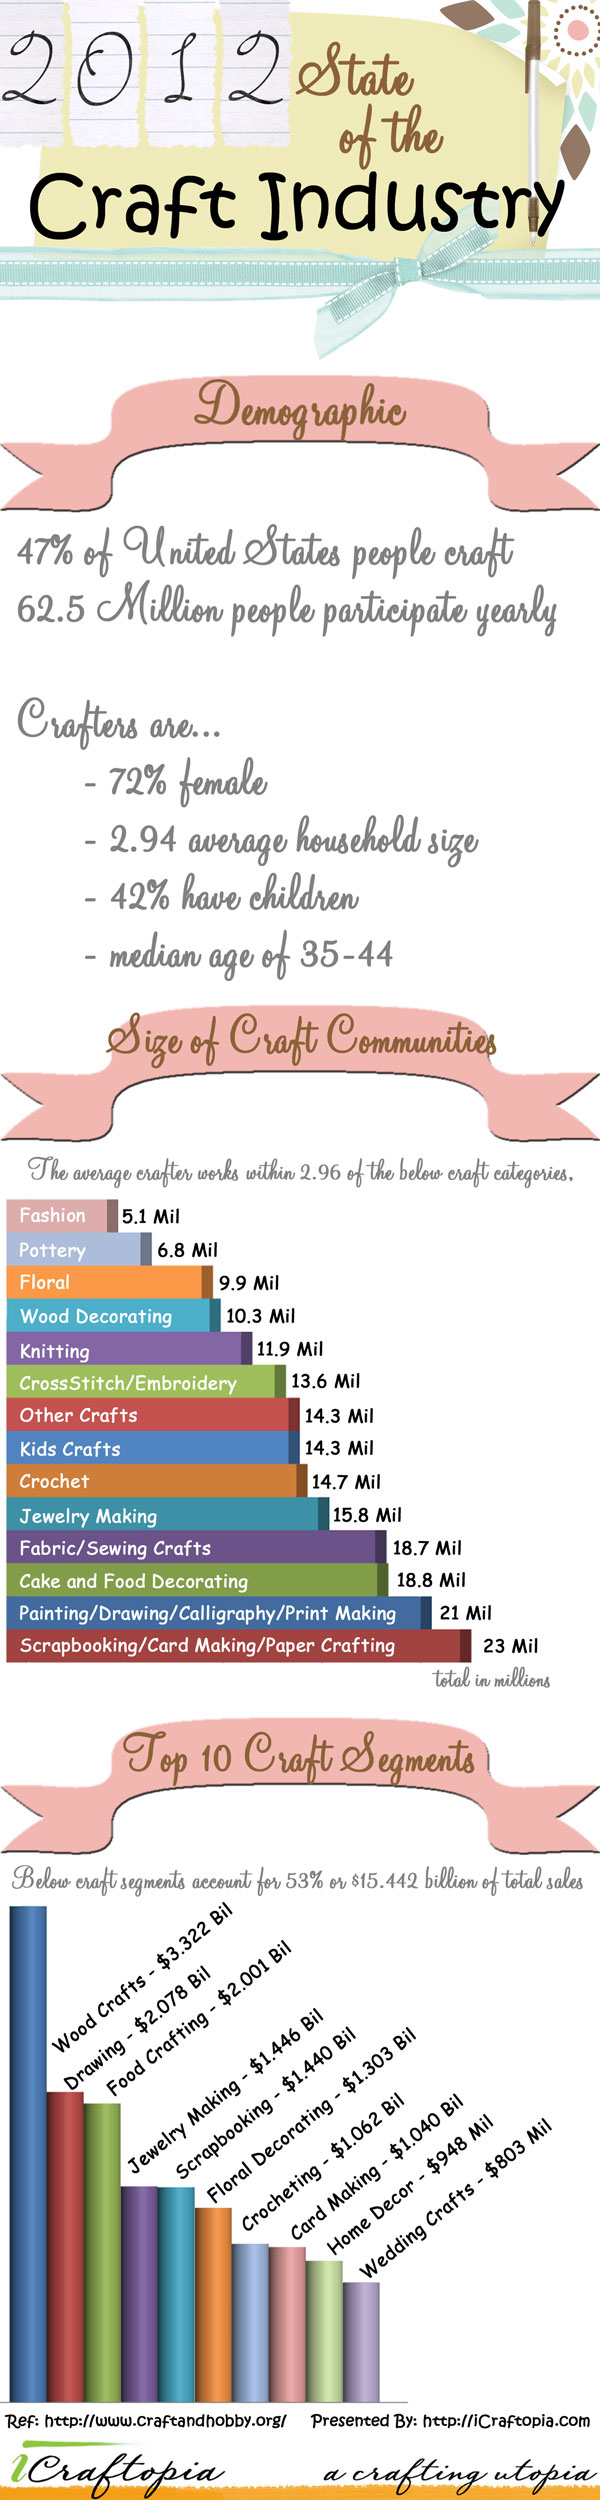 2012 State of the Craft Industry